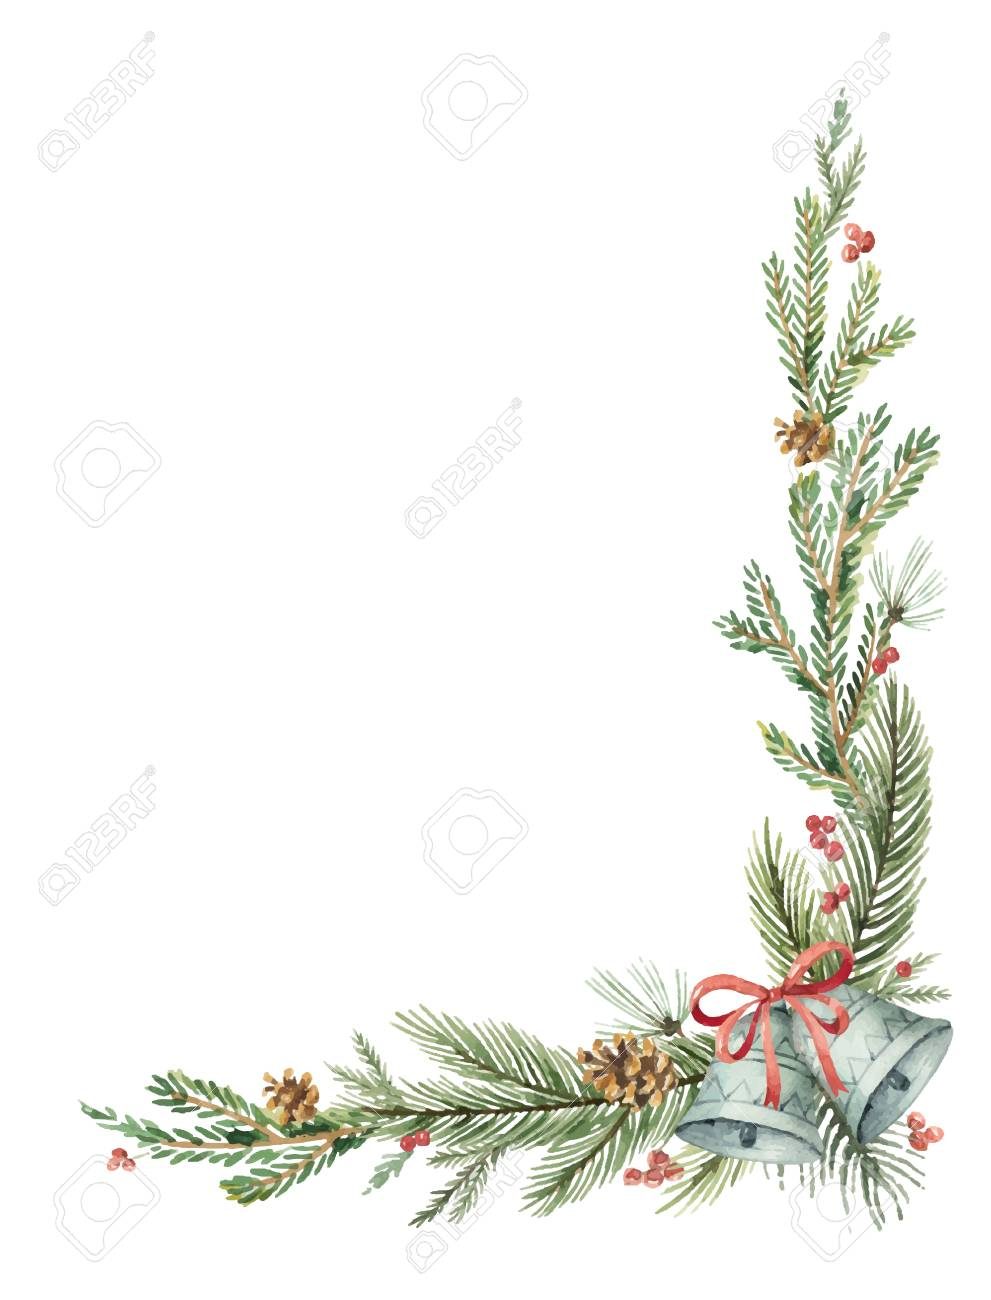 Watercolor vector Christmas decorative corner with fir branches and bells. - 89761165